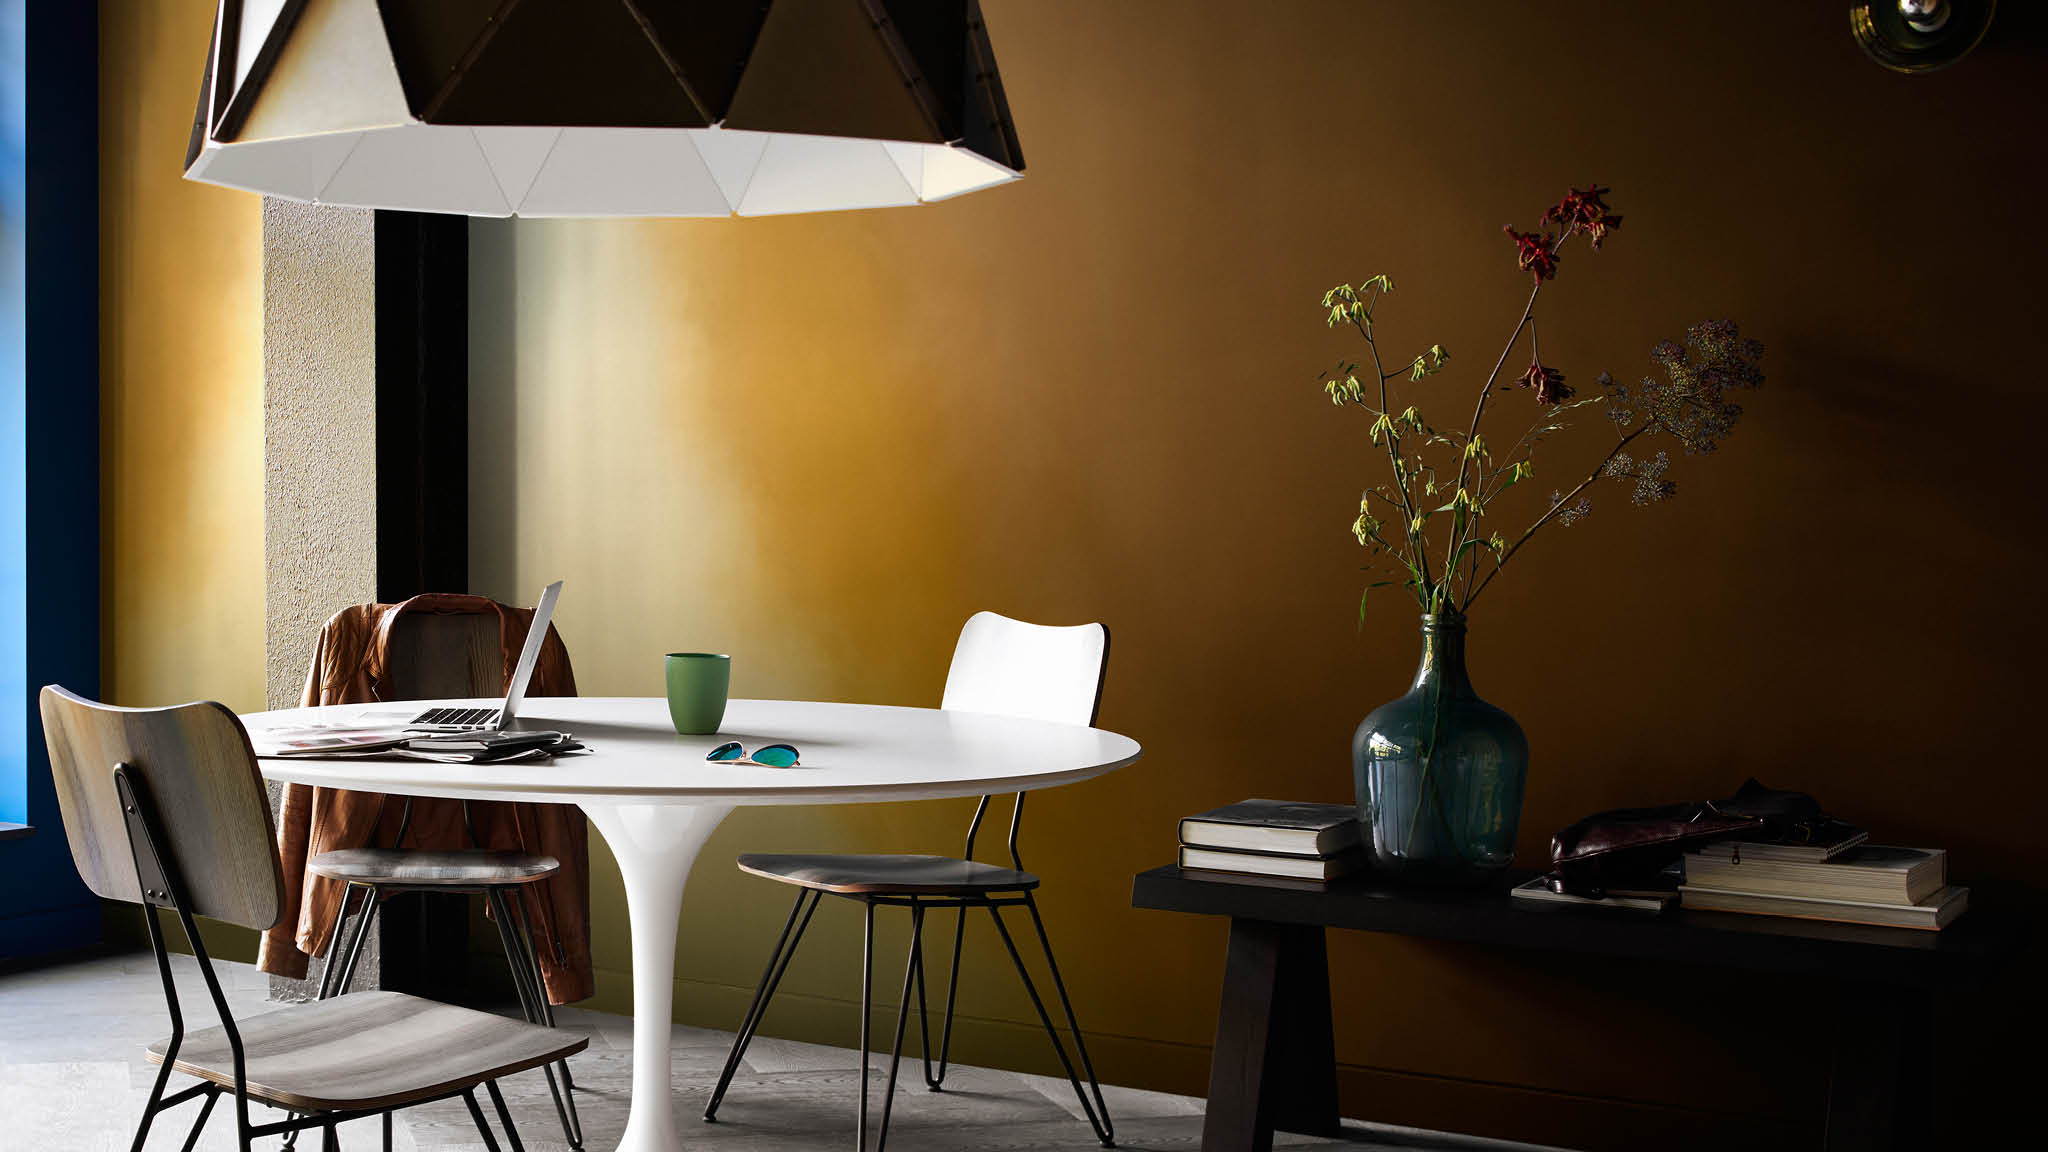 Rich brown and ochre gold have been blended with a paler shades to create an eye-catching colour flow effect. It's a great way to add drama to your dining room, particularly if only have a small space.